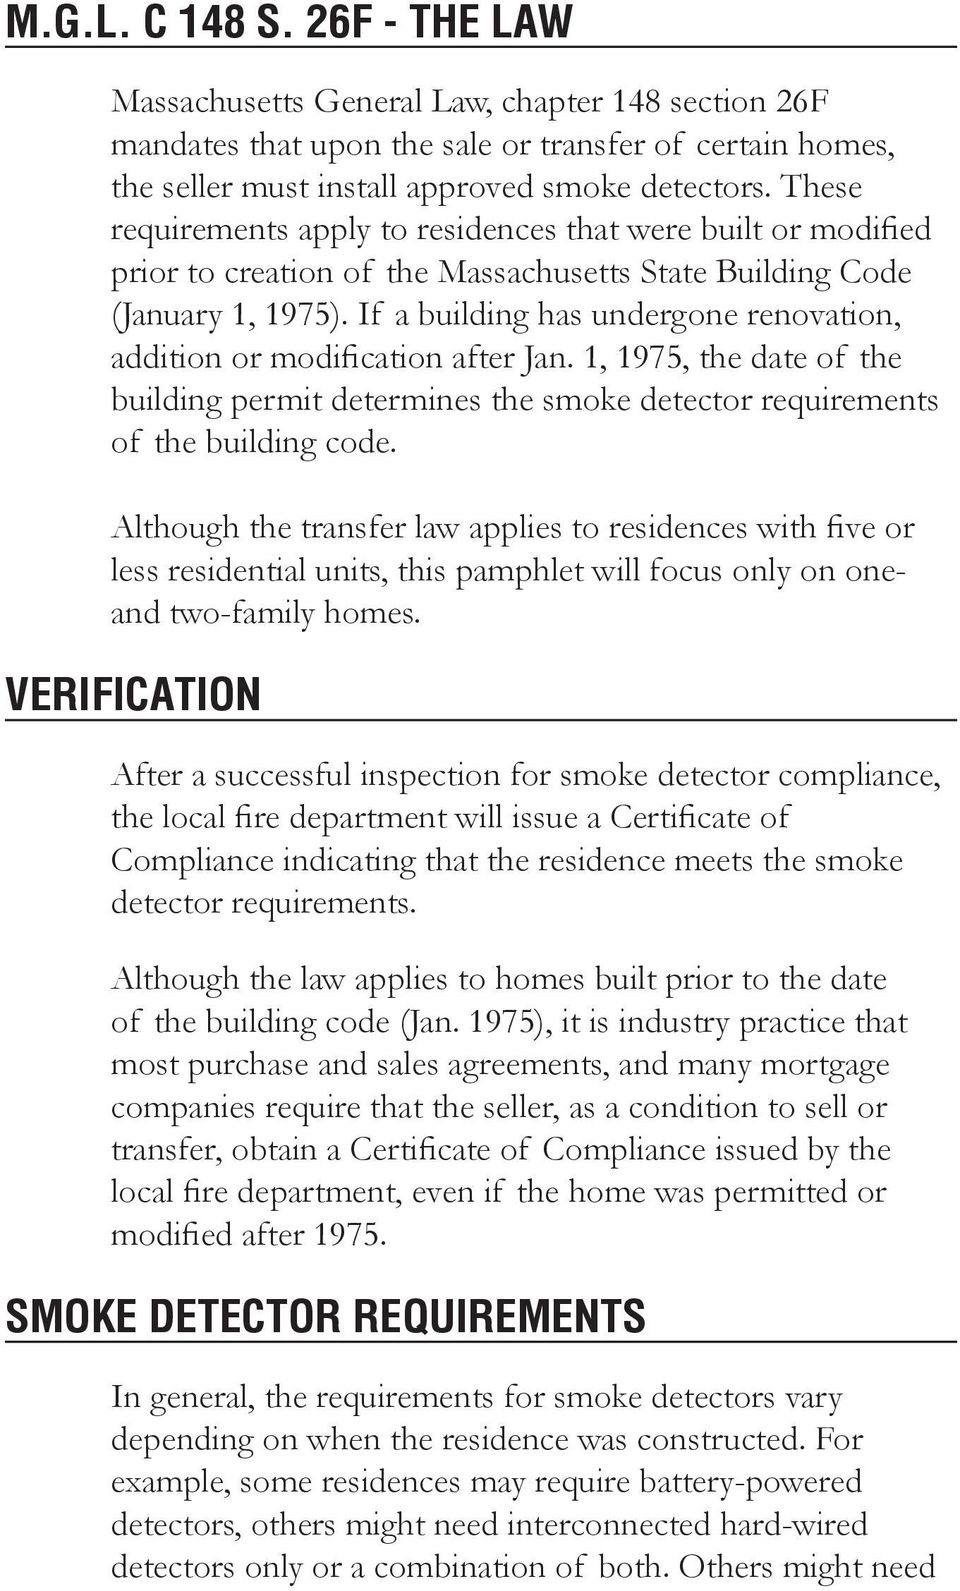 If a building has undergone renovation, addition or modification after Jan. 1, 1975, the date of the building permit determines the smoke detector requirements of the building code.